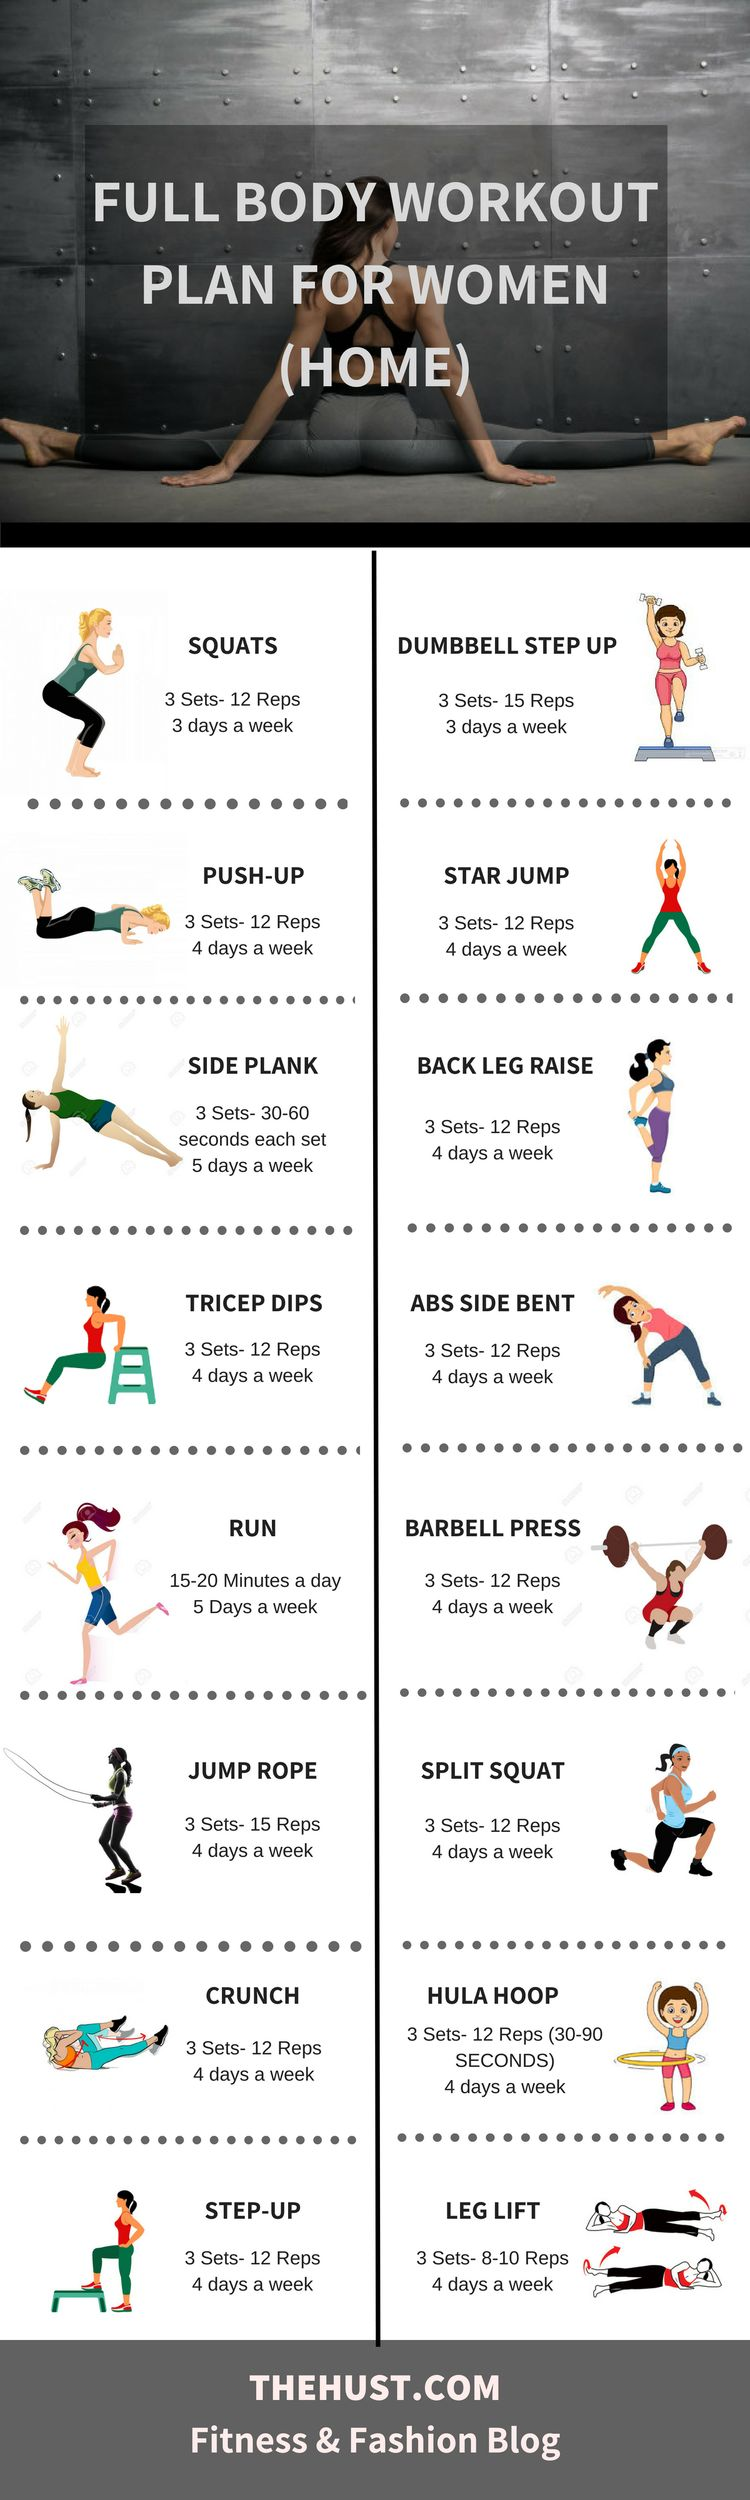 Full body workout routines are great for both, beginners a